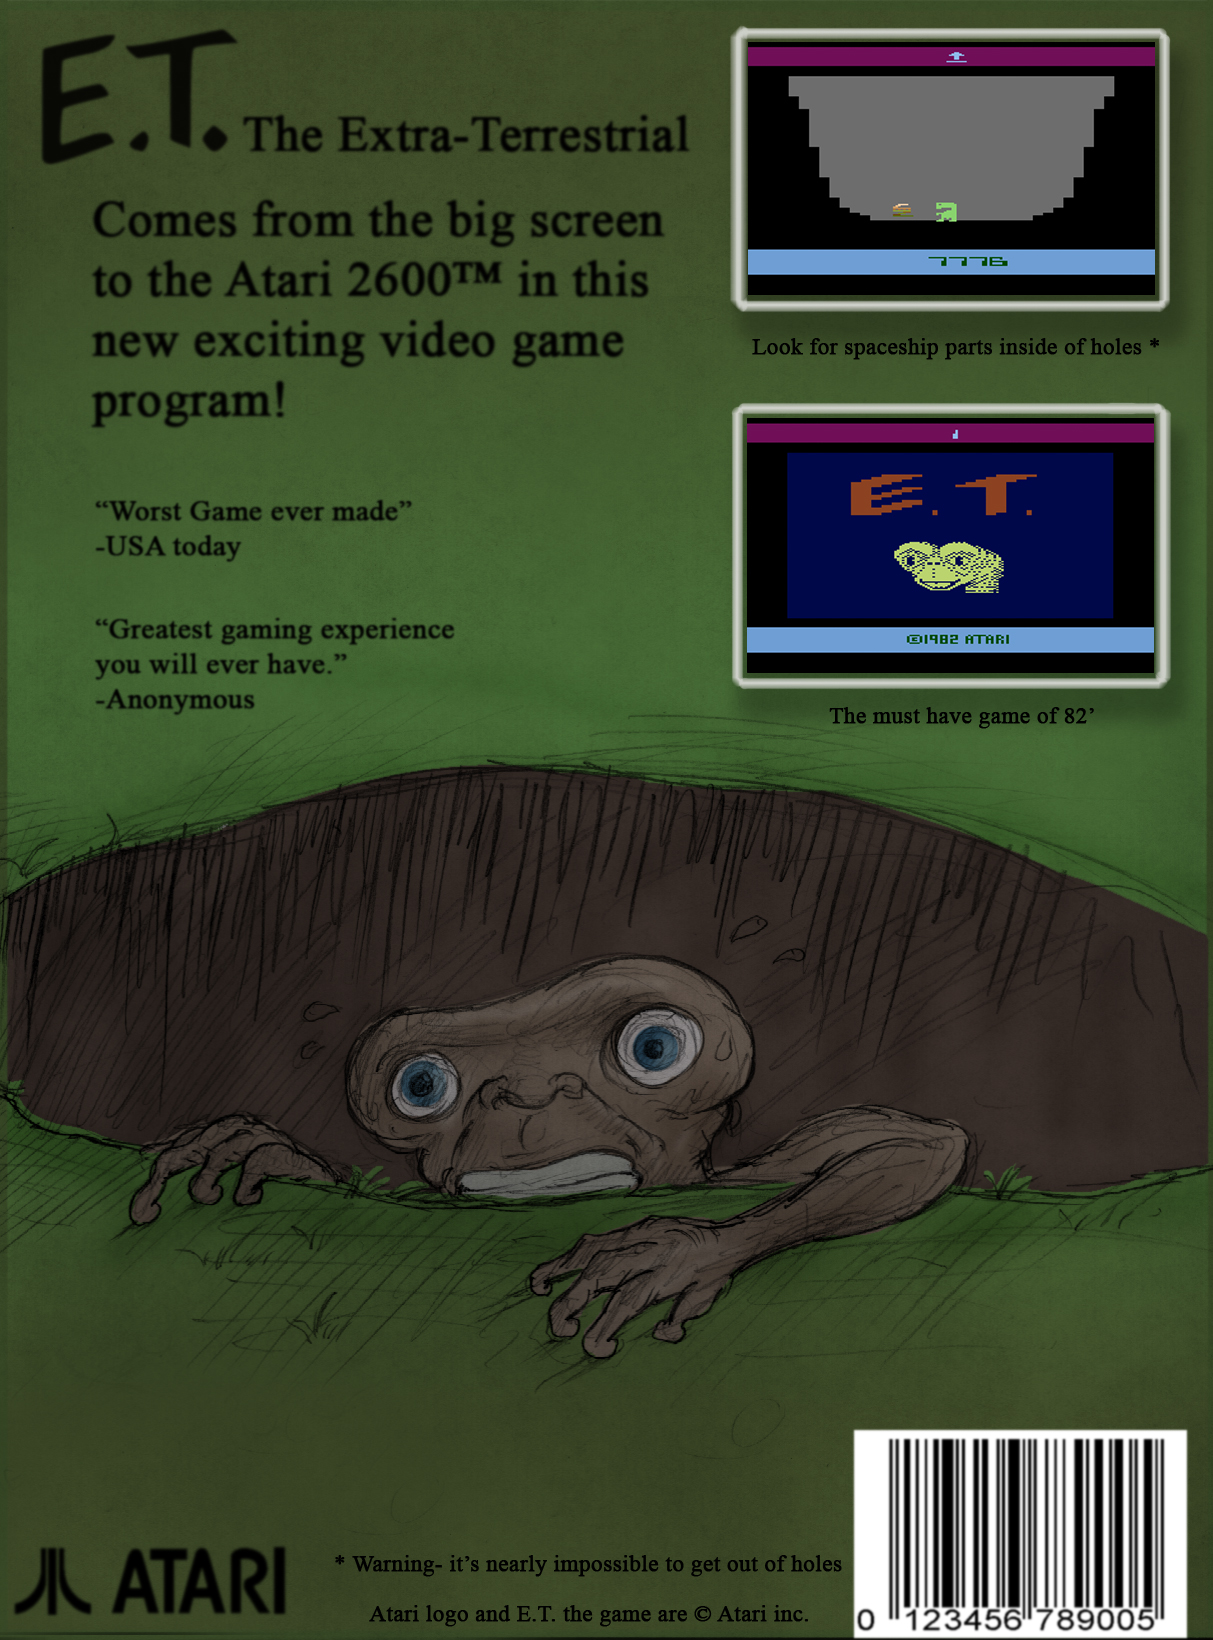 E.T. for the Atari 2600 by Deimos-Remus on DeviantArt